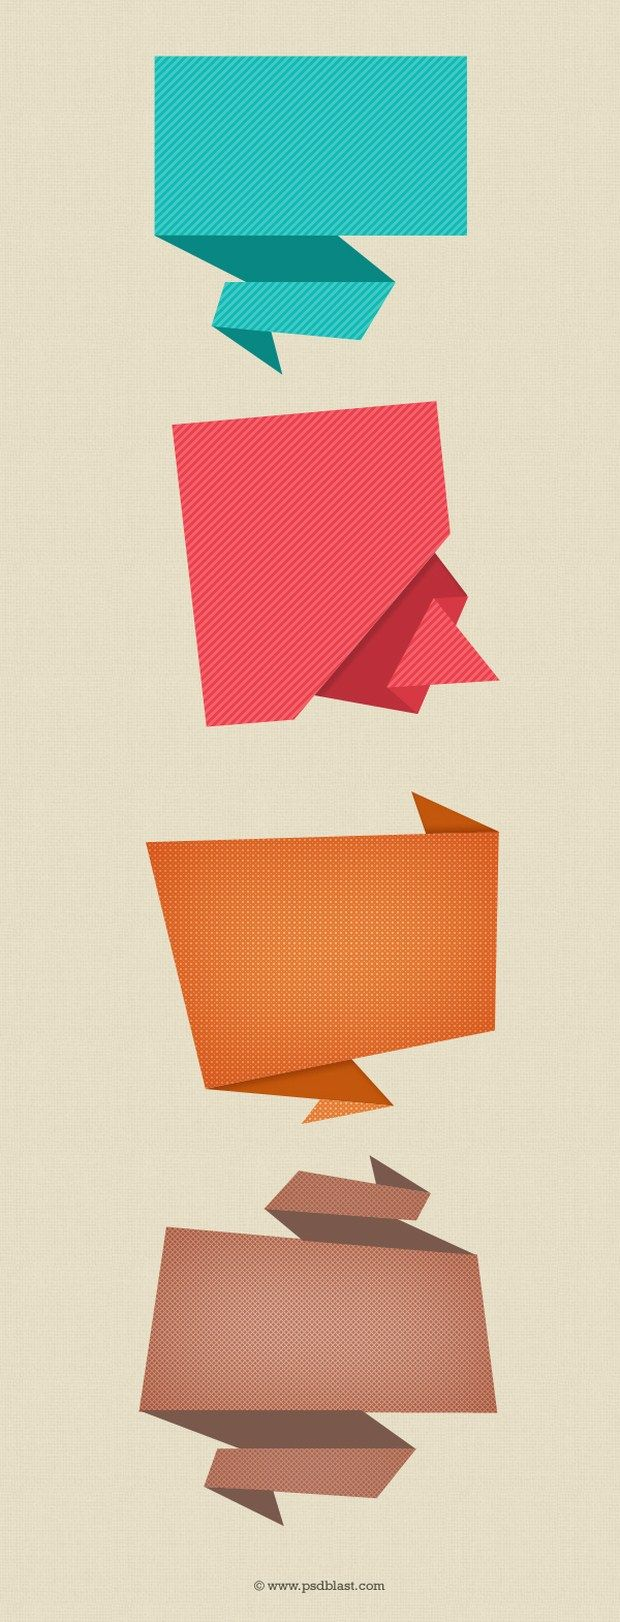 Friday Freebies – Free PSD Files For Designers #27